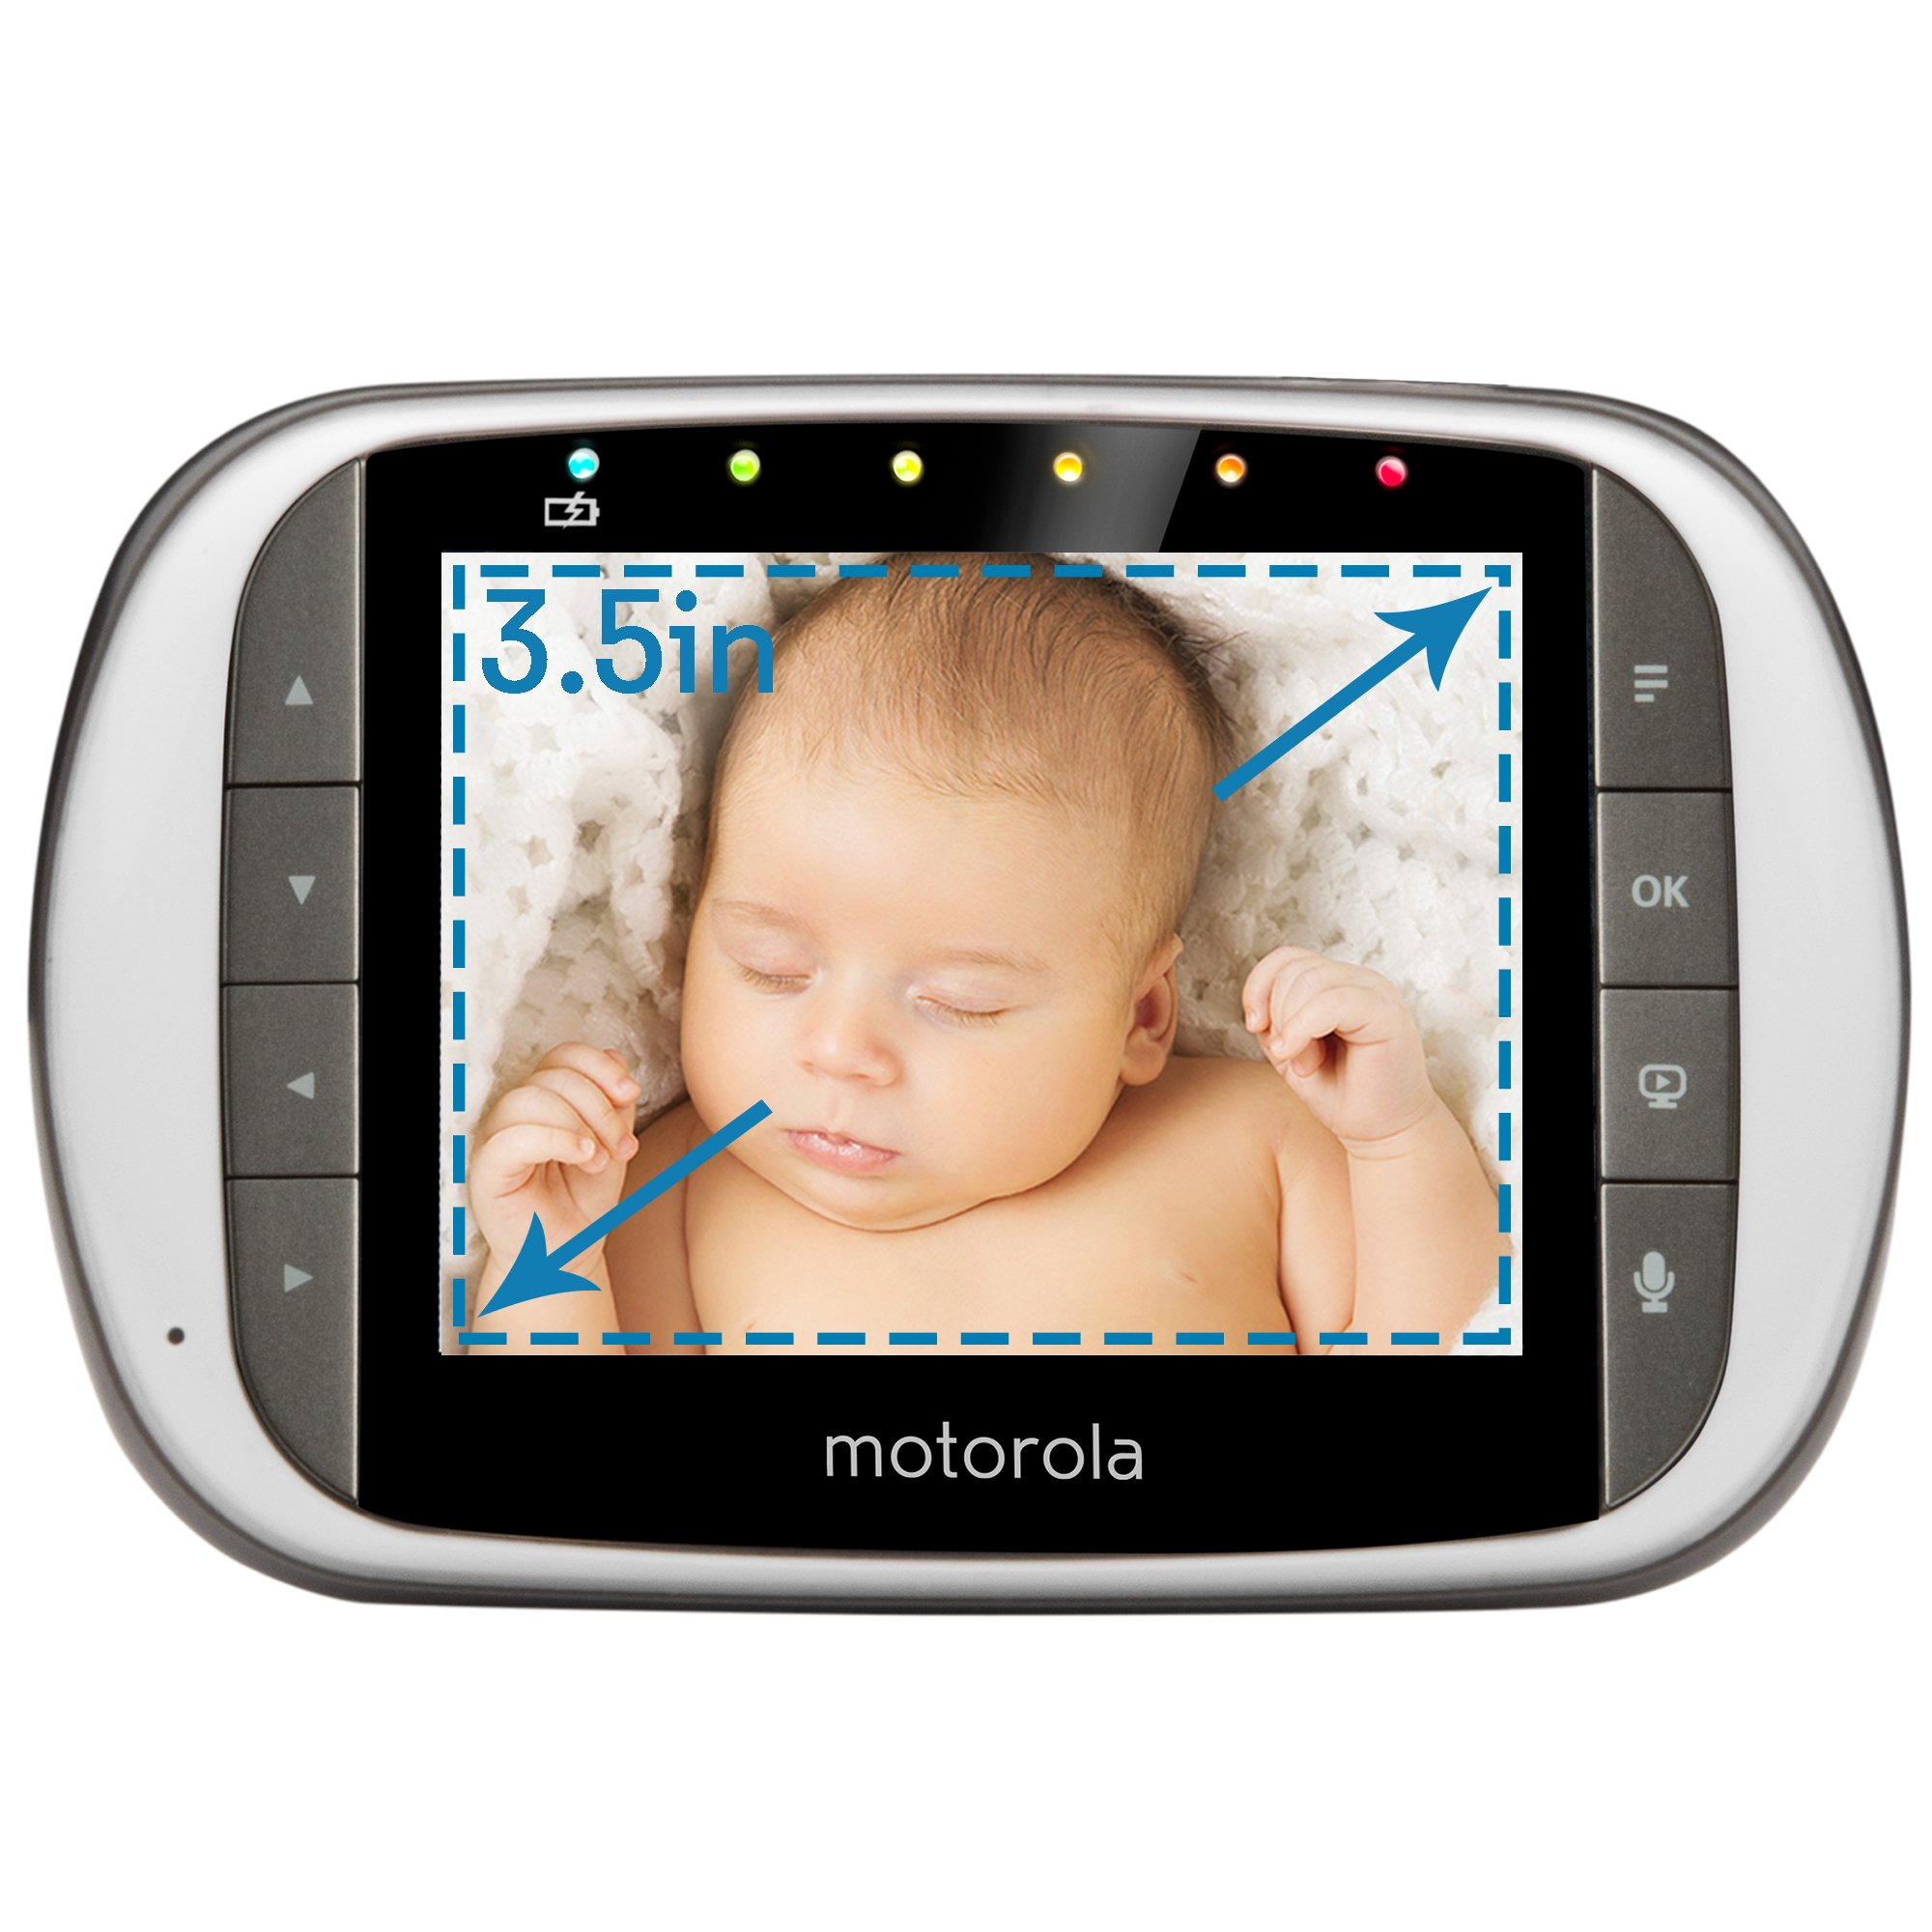 Motorola MBP853CONNECT-2 Dual Mode Baby Monitor with 2 Cameras and 3.5-Inch LCD Parent Monitor and Wi-Fi Internet Viewing by Motorola Baby (Image #8)